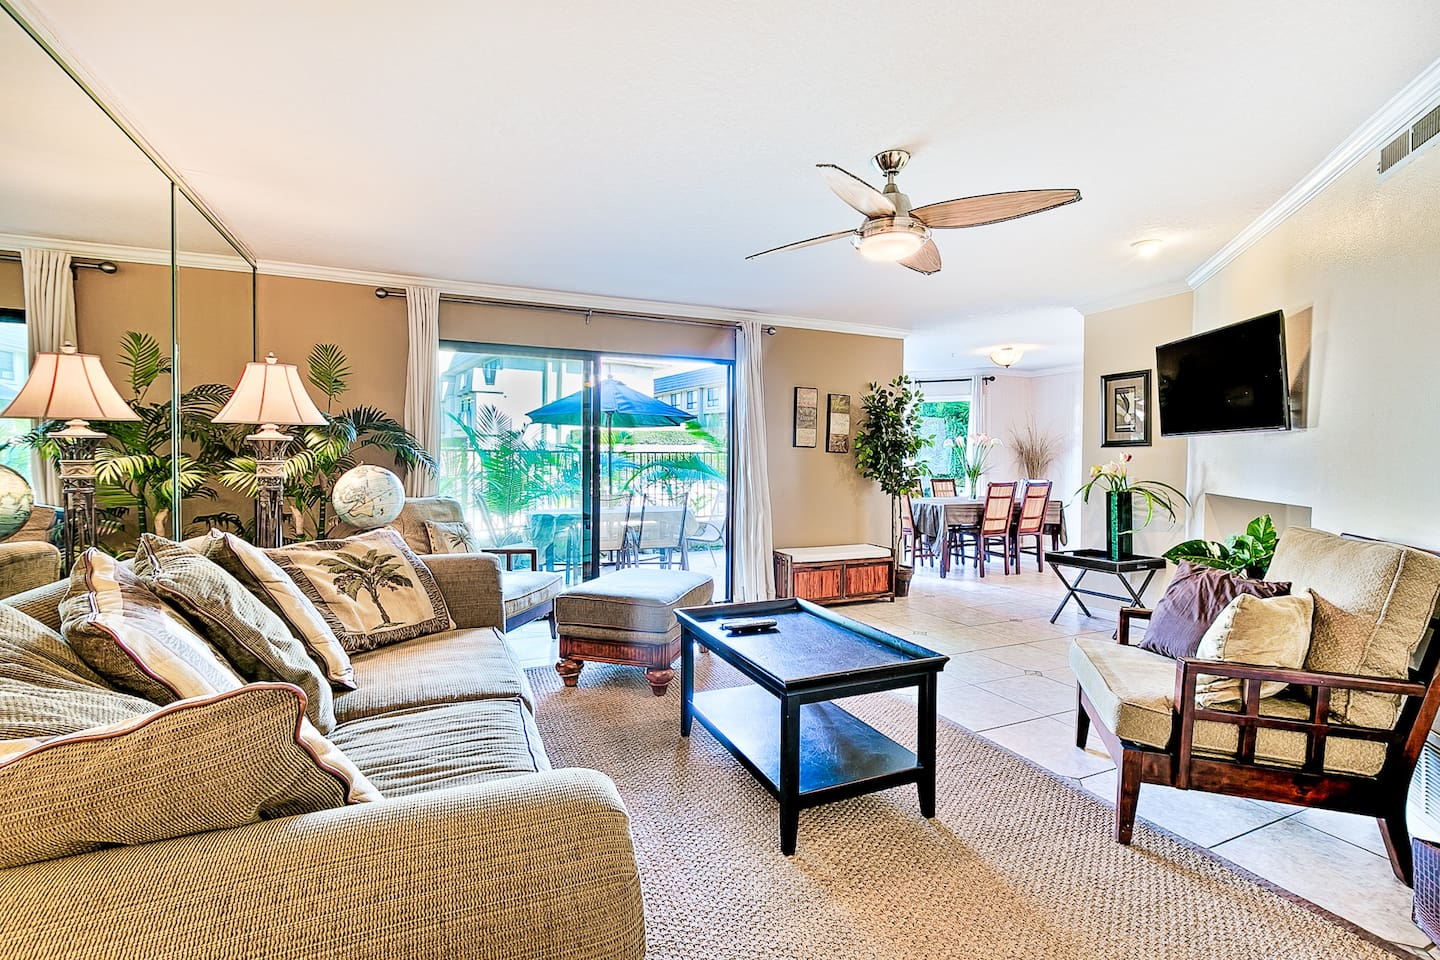 As you enter this comfortable home, you will see beach style furnishings in the living space and lots of natural light coming through the big windows. The living space flows right into the dining area with seating for 6, which overlooks the heated pool area.